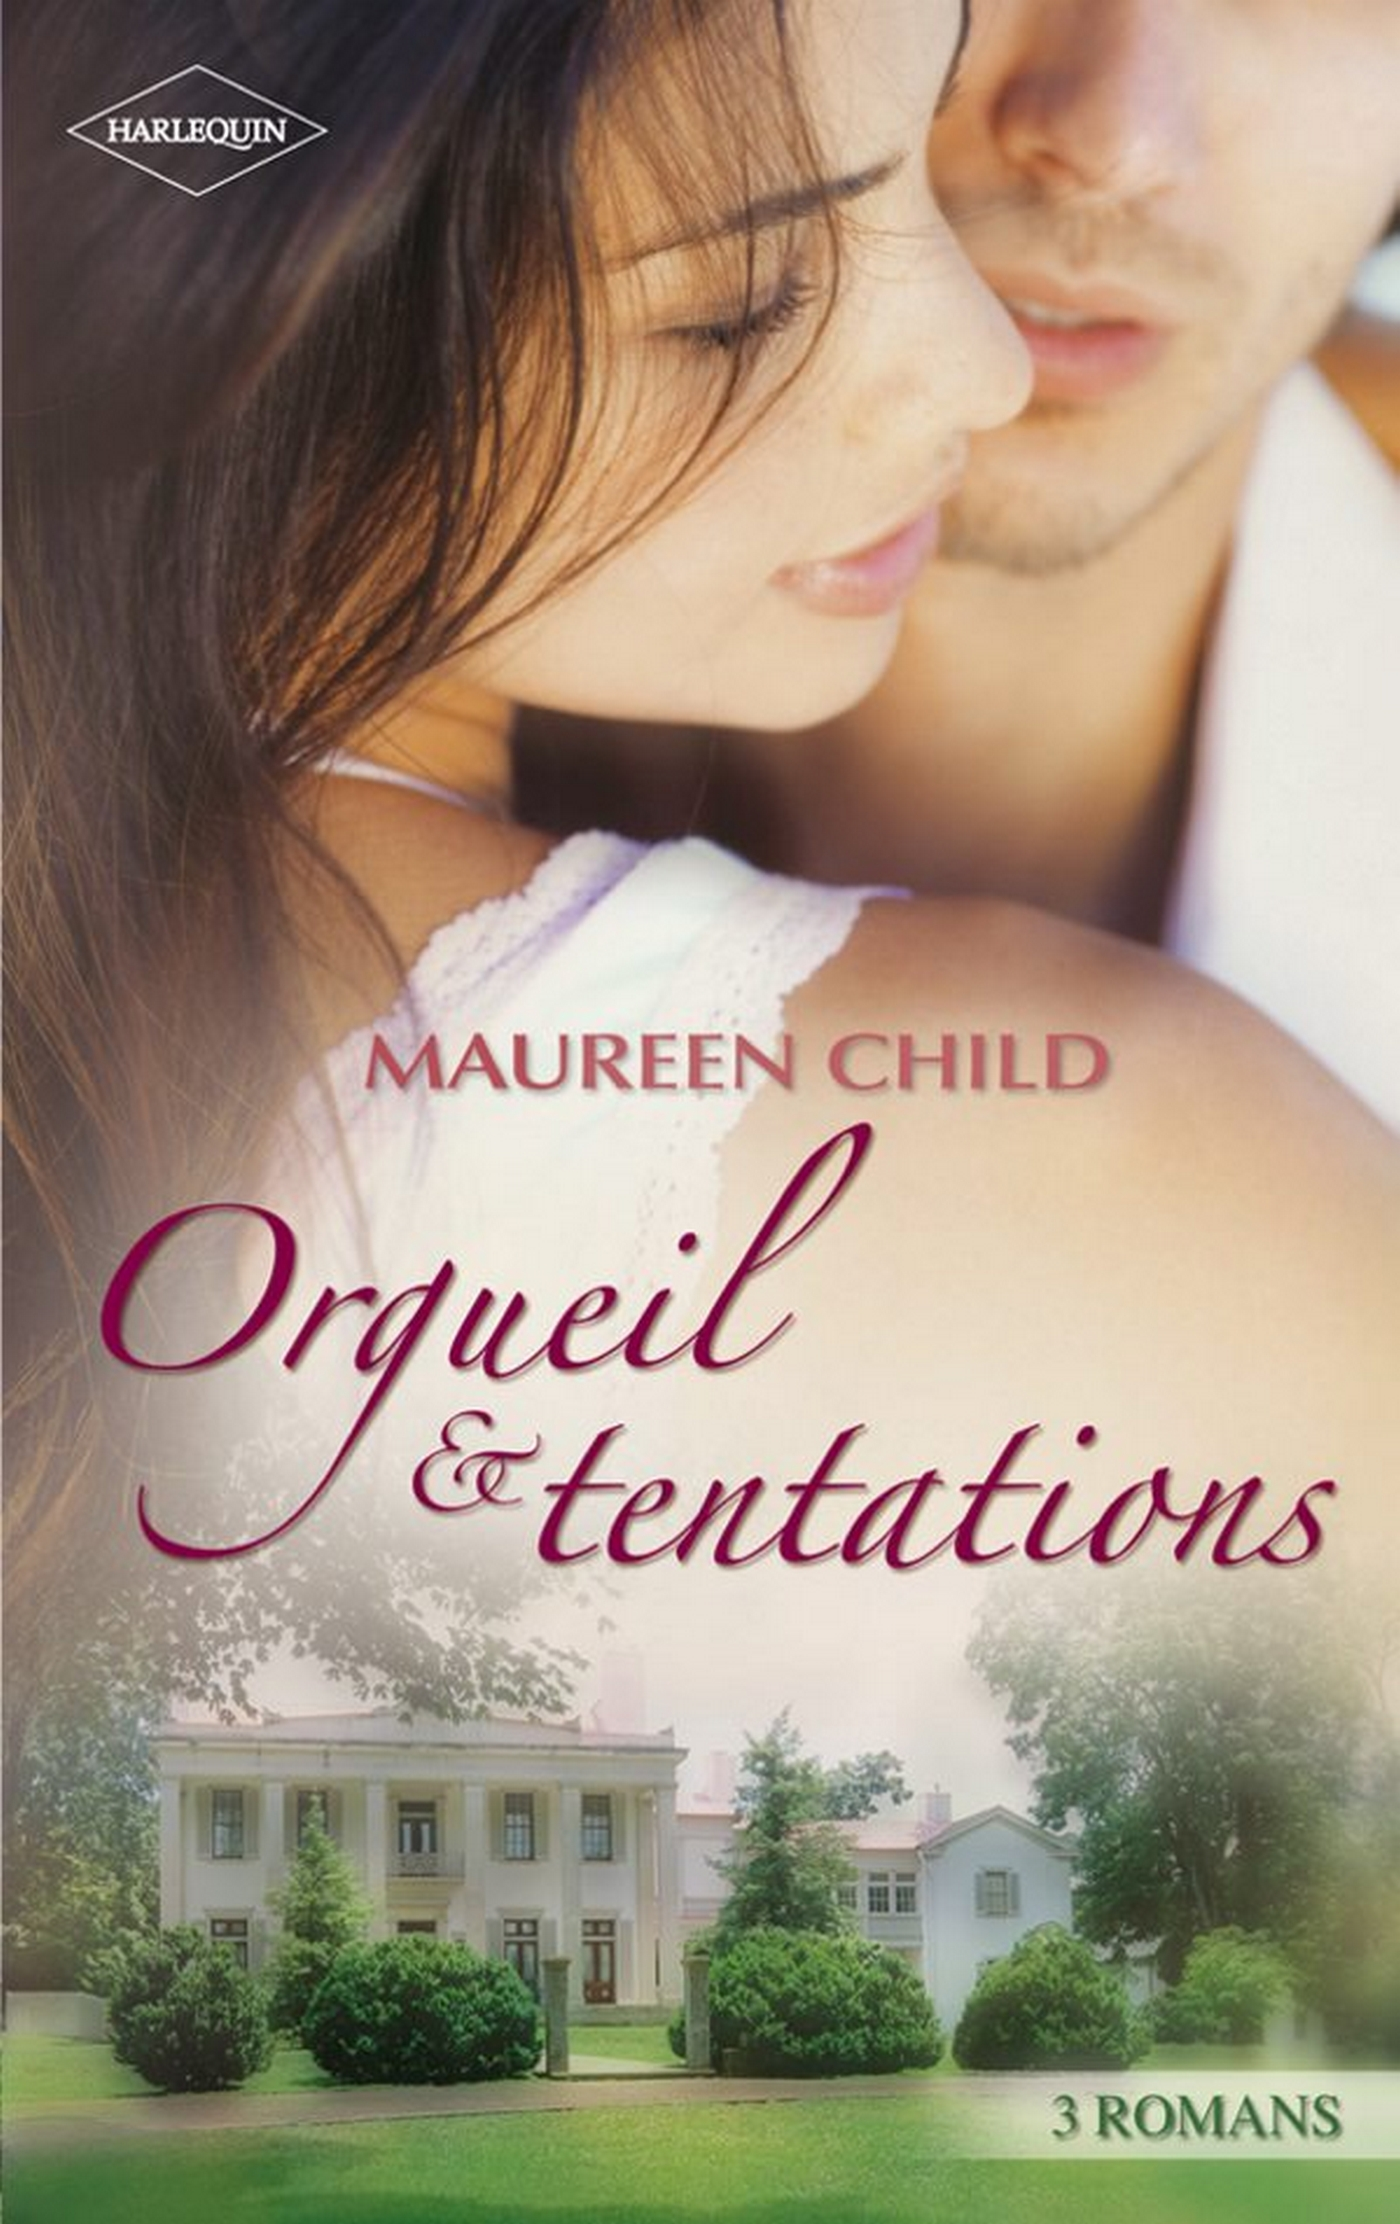 Orgueil & tentations, 3 ROMANS